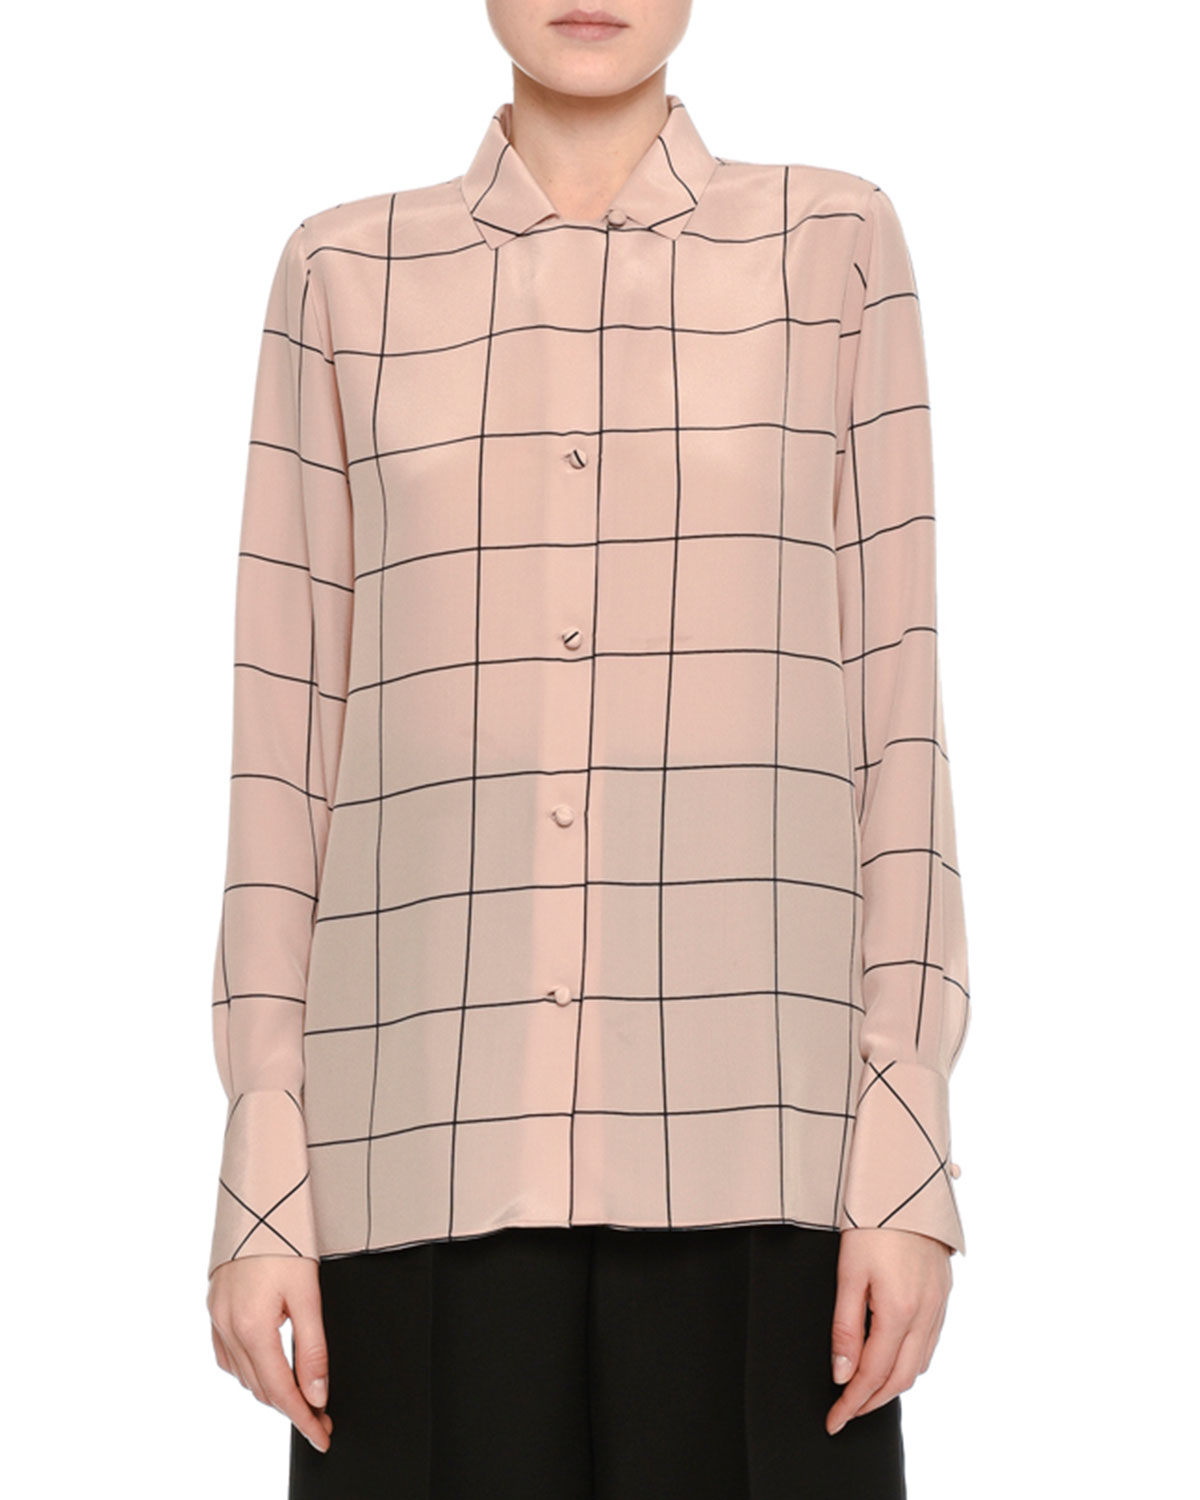 Windowpane Crêpe de Chine Shirt, Blush